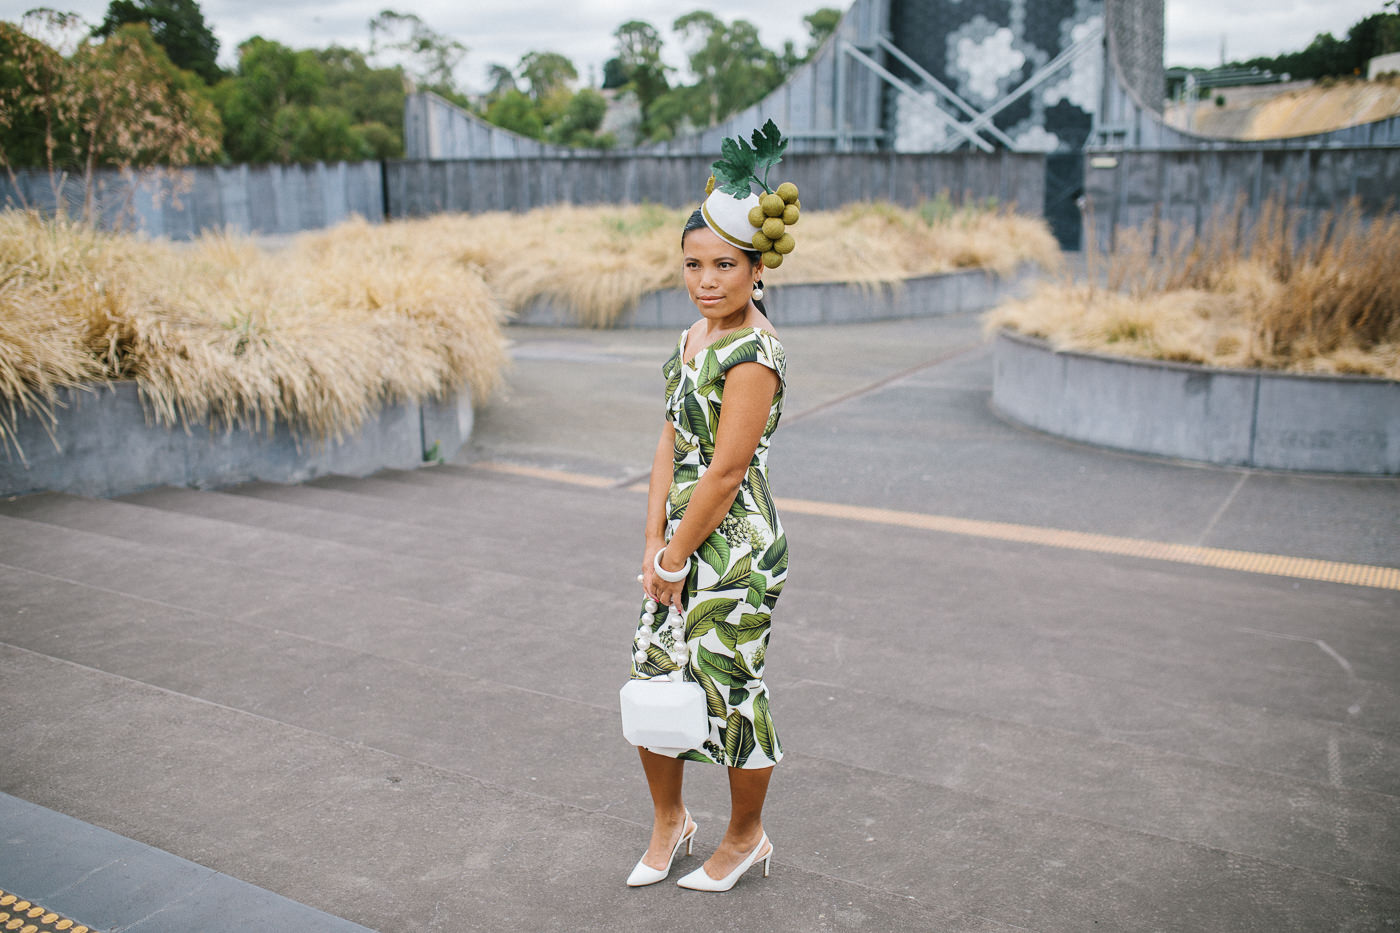 Country Racing outfit - Racewear 2019/2020 Trends